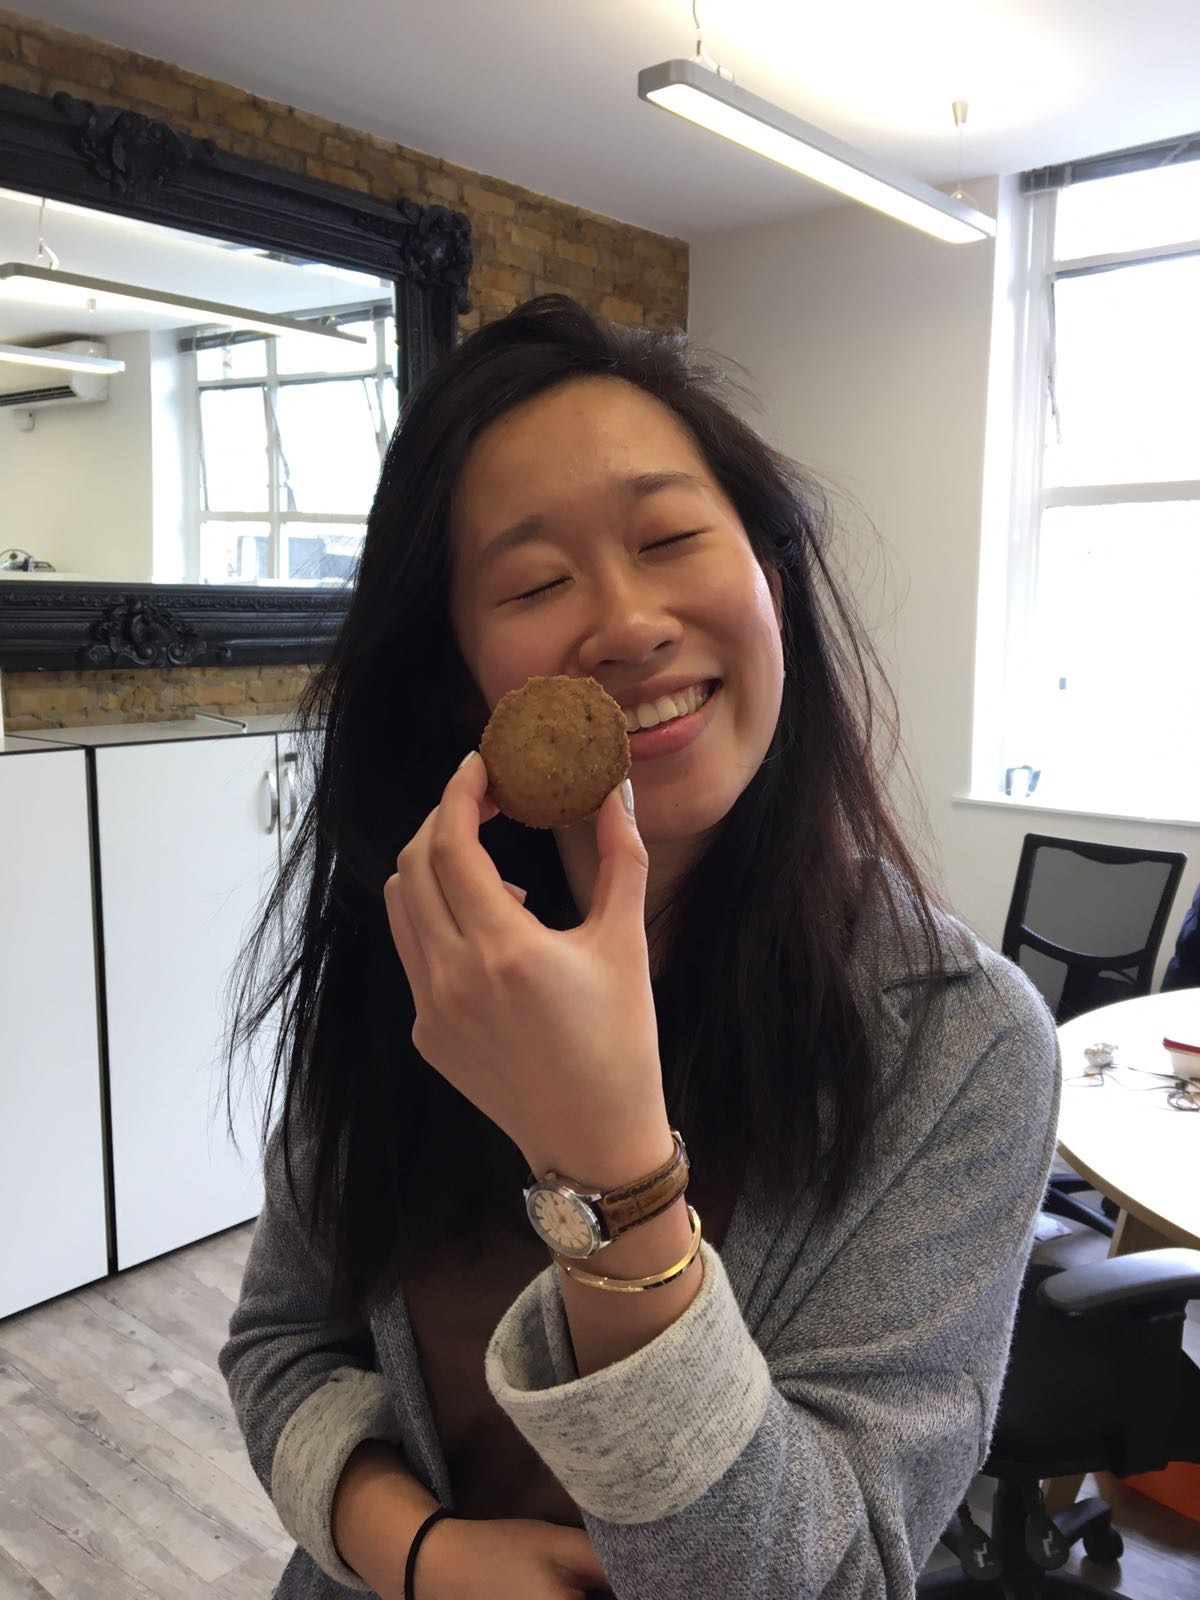 Woman smiling with a cookie held against her face